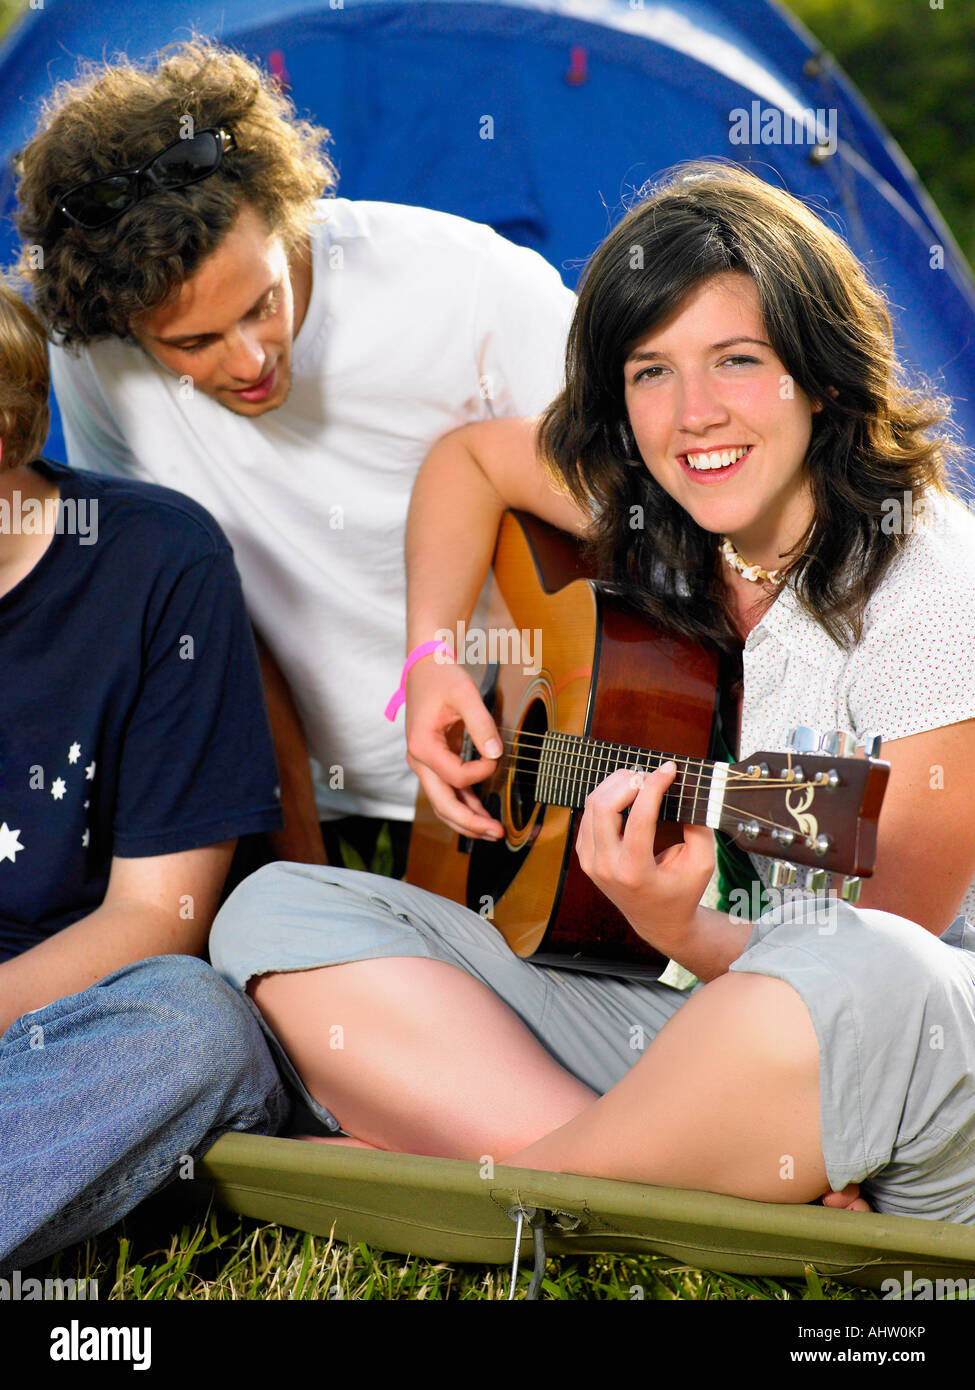 Girl playing guitar while male looks over - Stock Image